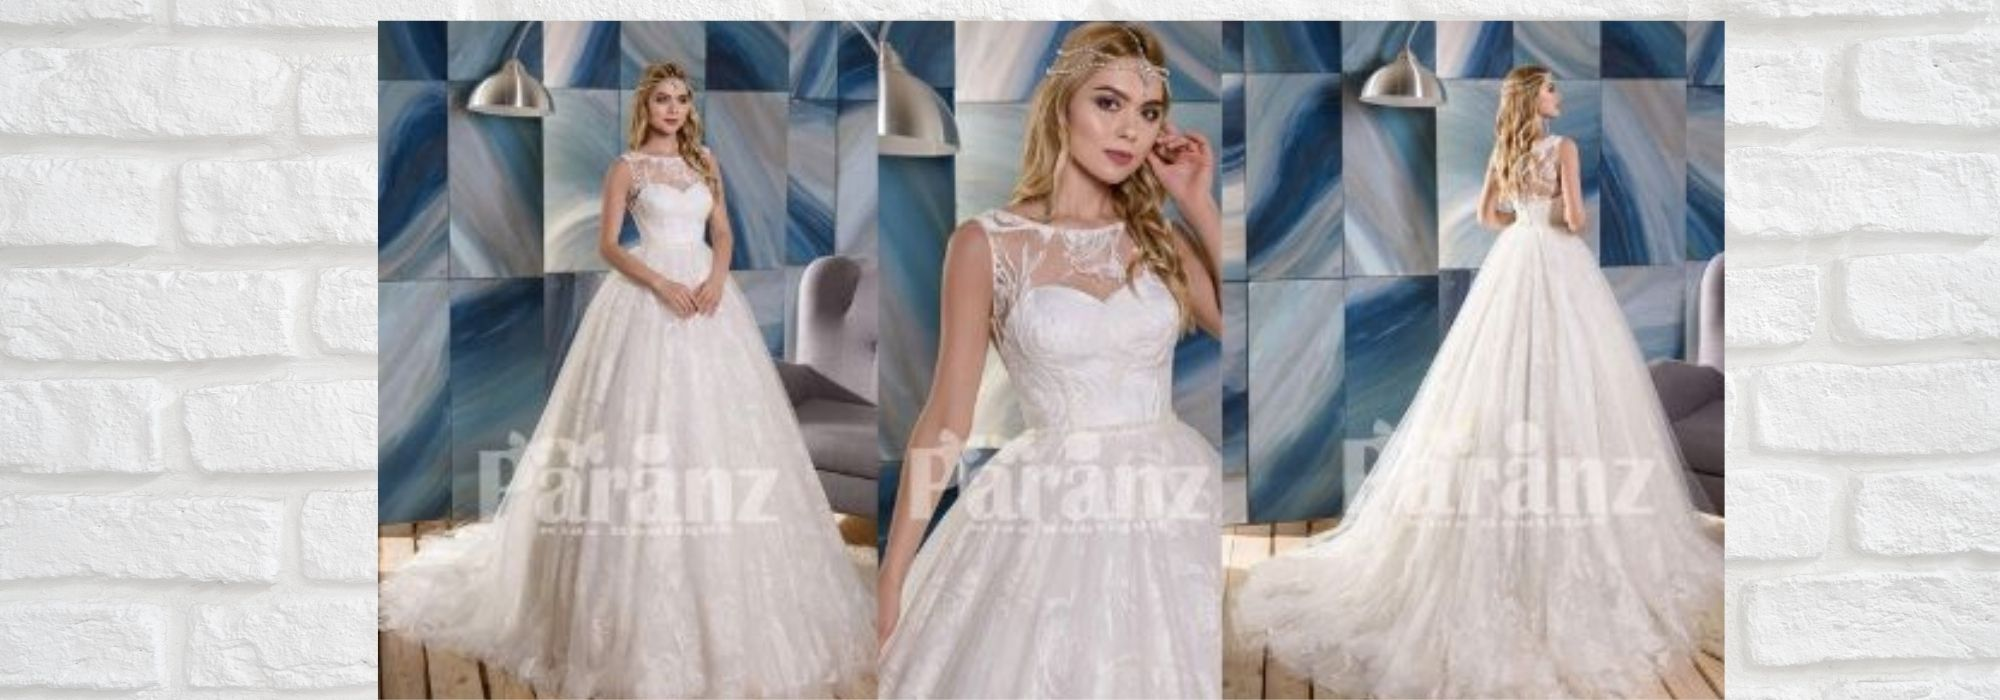 A BRIEF HISTORY AND UPCOMING TRENDS IN BRIDAL GOWNS